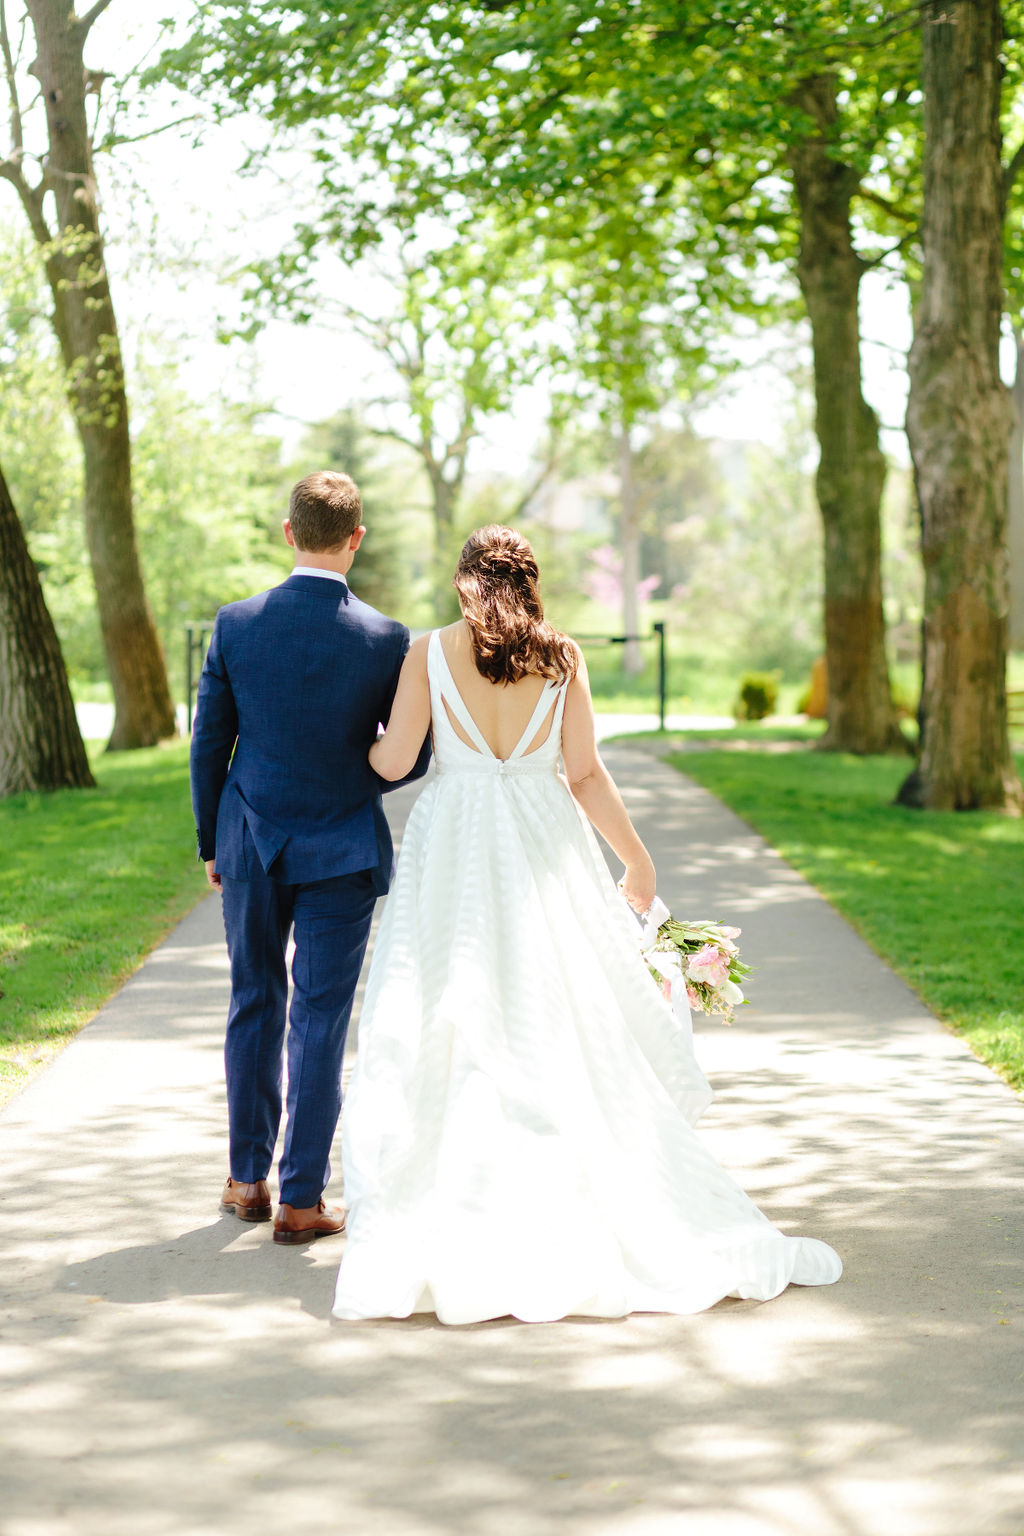 Bride and groom walking - wedding portrait under a canopy of trees - Preppy spring wedding at Zingerman's Cornman Farms - Leah E. Moss Designs - photo by Katie Grace Photography